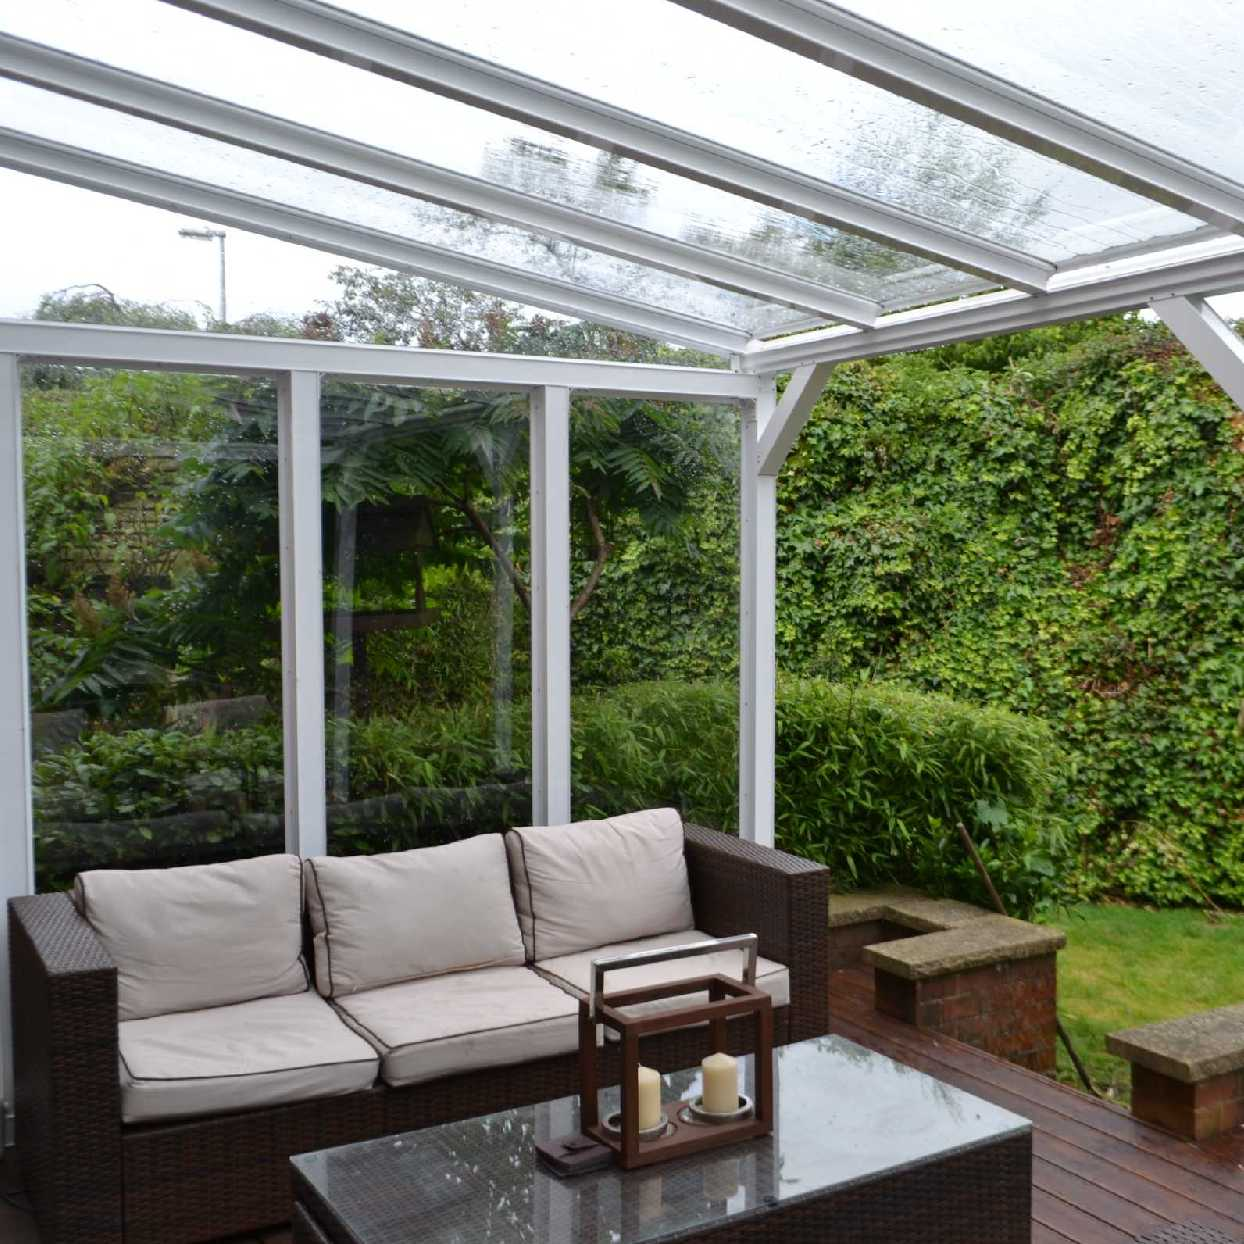 Omega Smart White Lean-To Canopy with 6mm Glass Clear Plate Polycarbonate Glazing - 8.4m (W) x 1.5m (P), (4) Supporting Posts